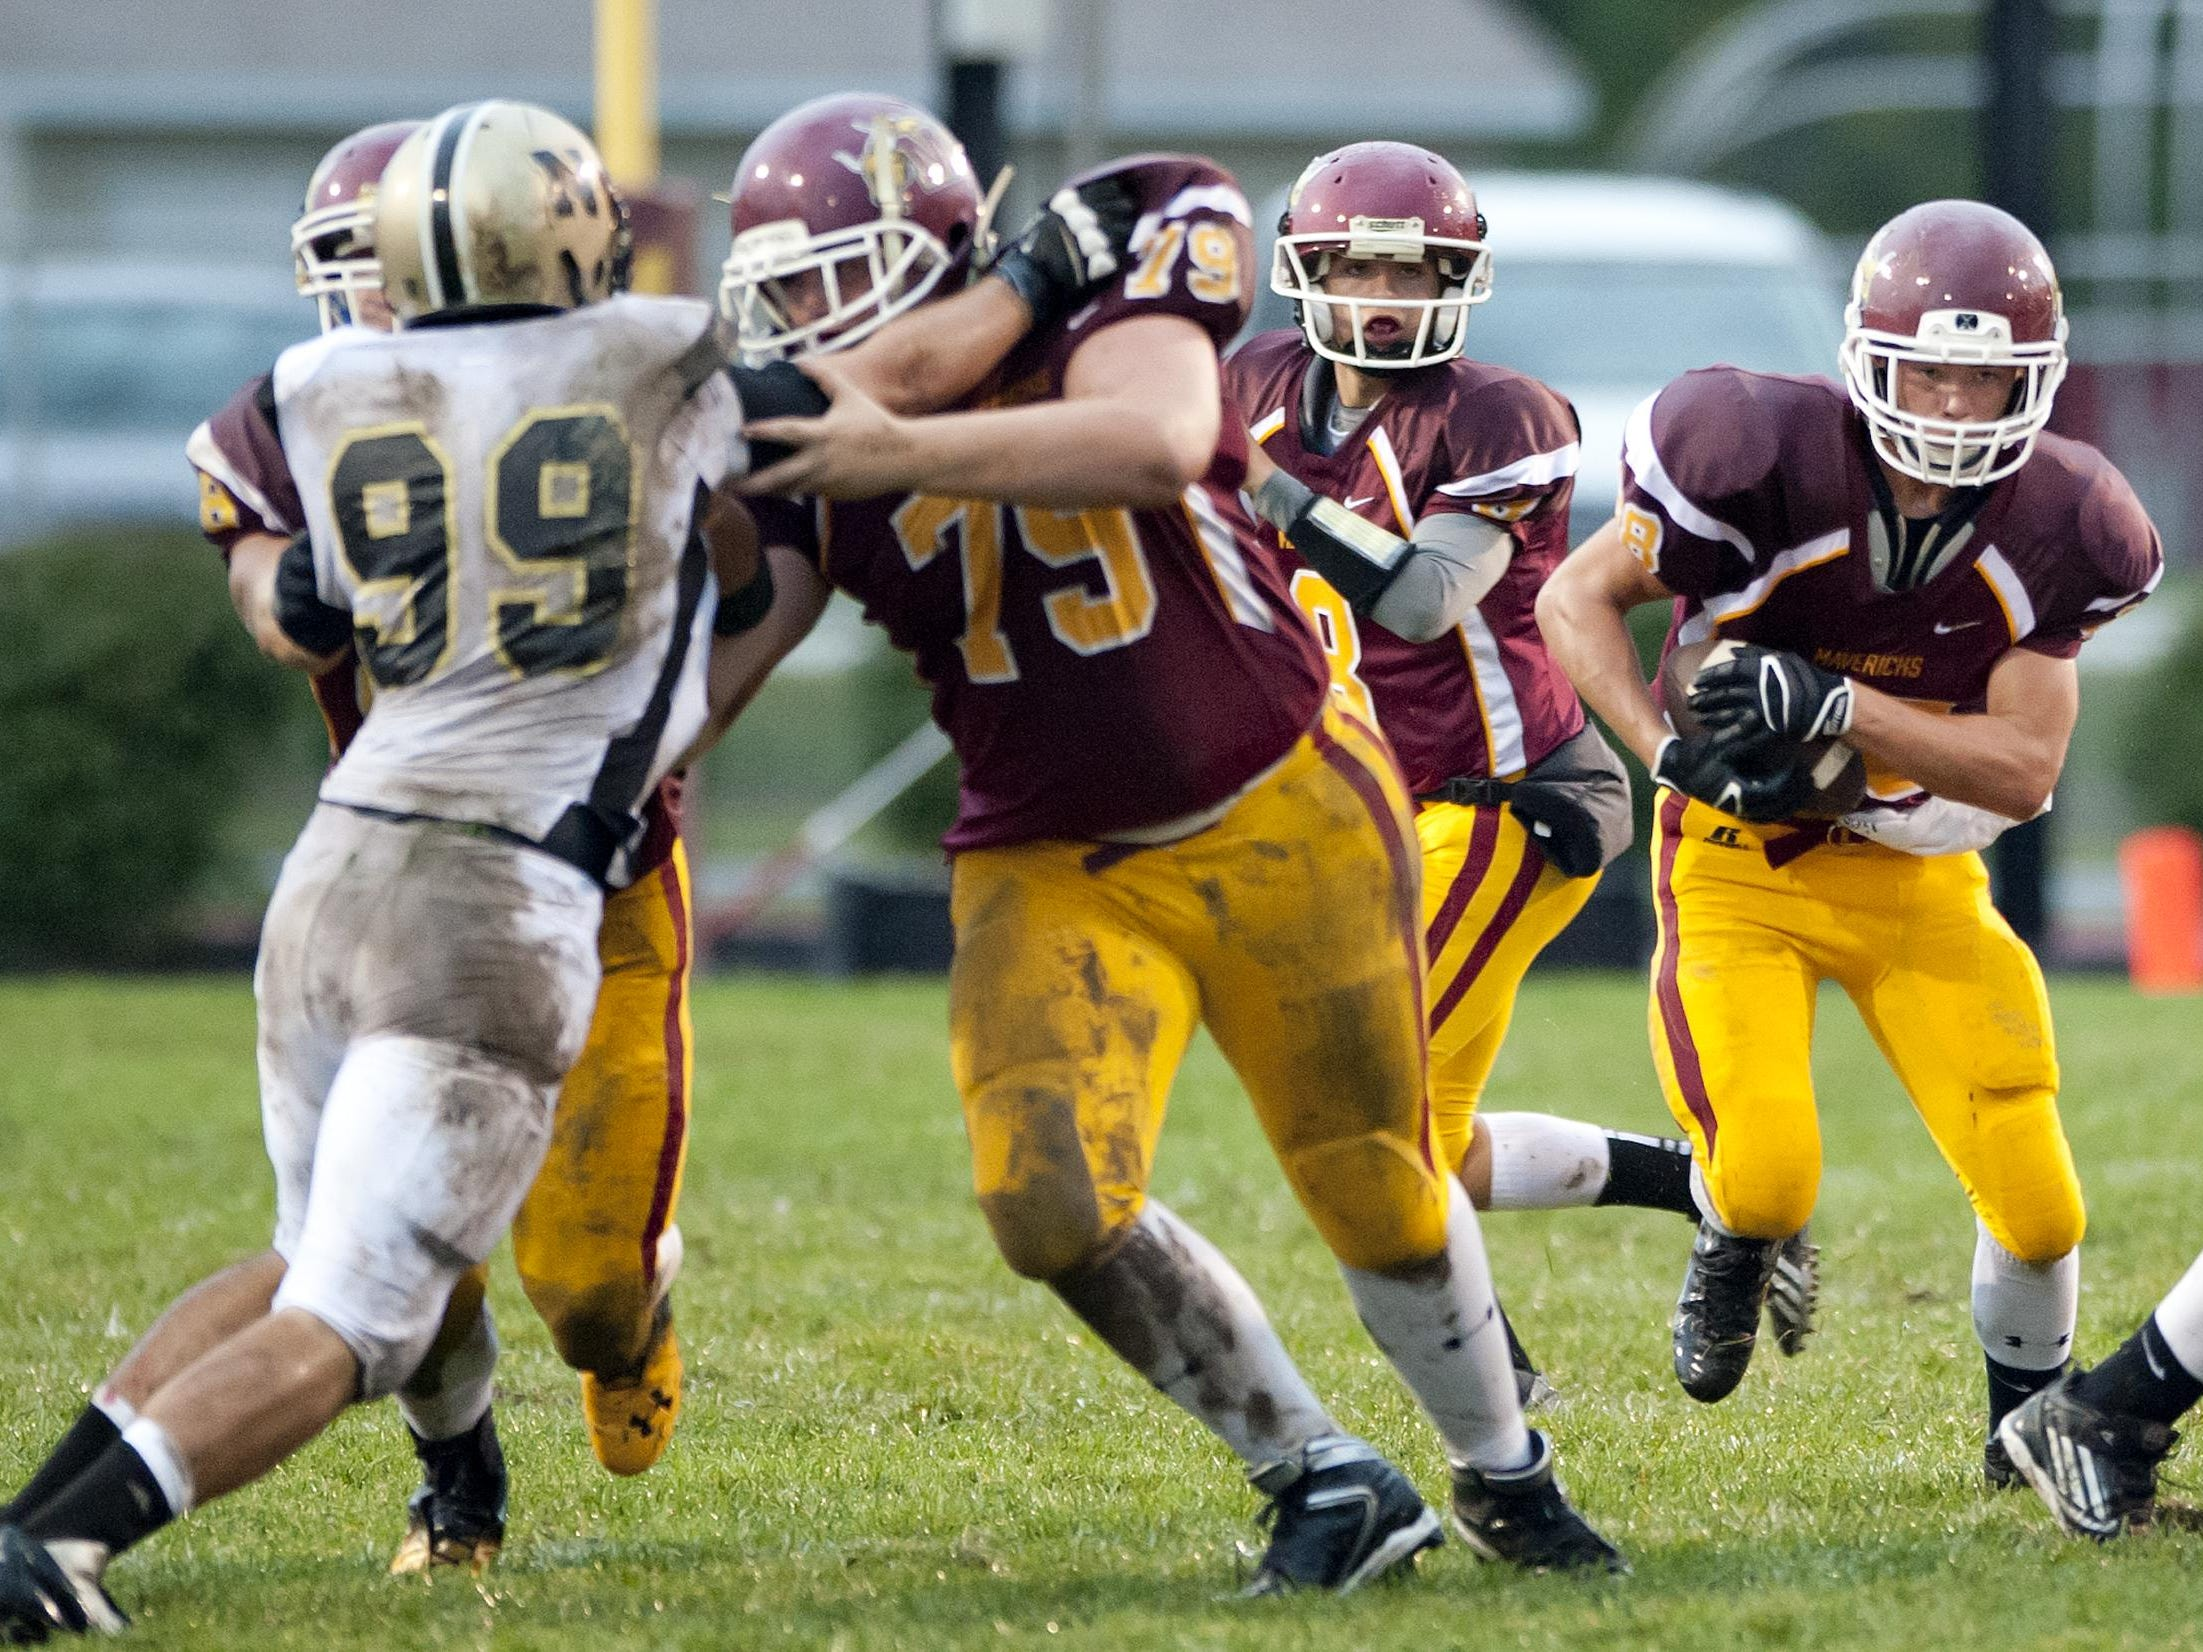 McCutcheon offensive lineman Nick Cox (79) helped running back Blake Elming run for more than 2,200 yards last season. Both played in Friday night's North-South All-Star Game.